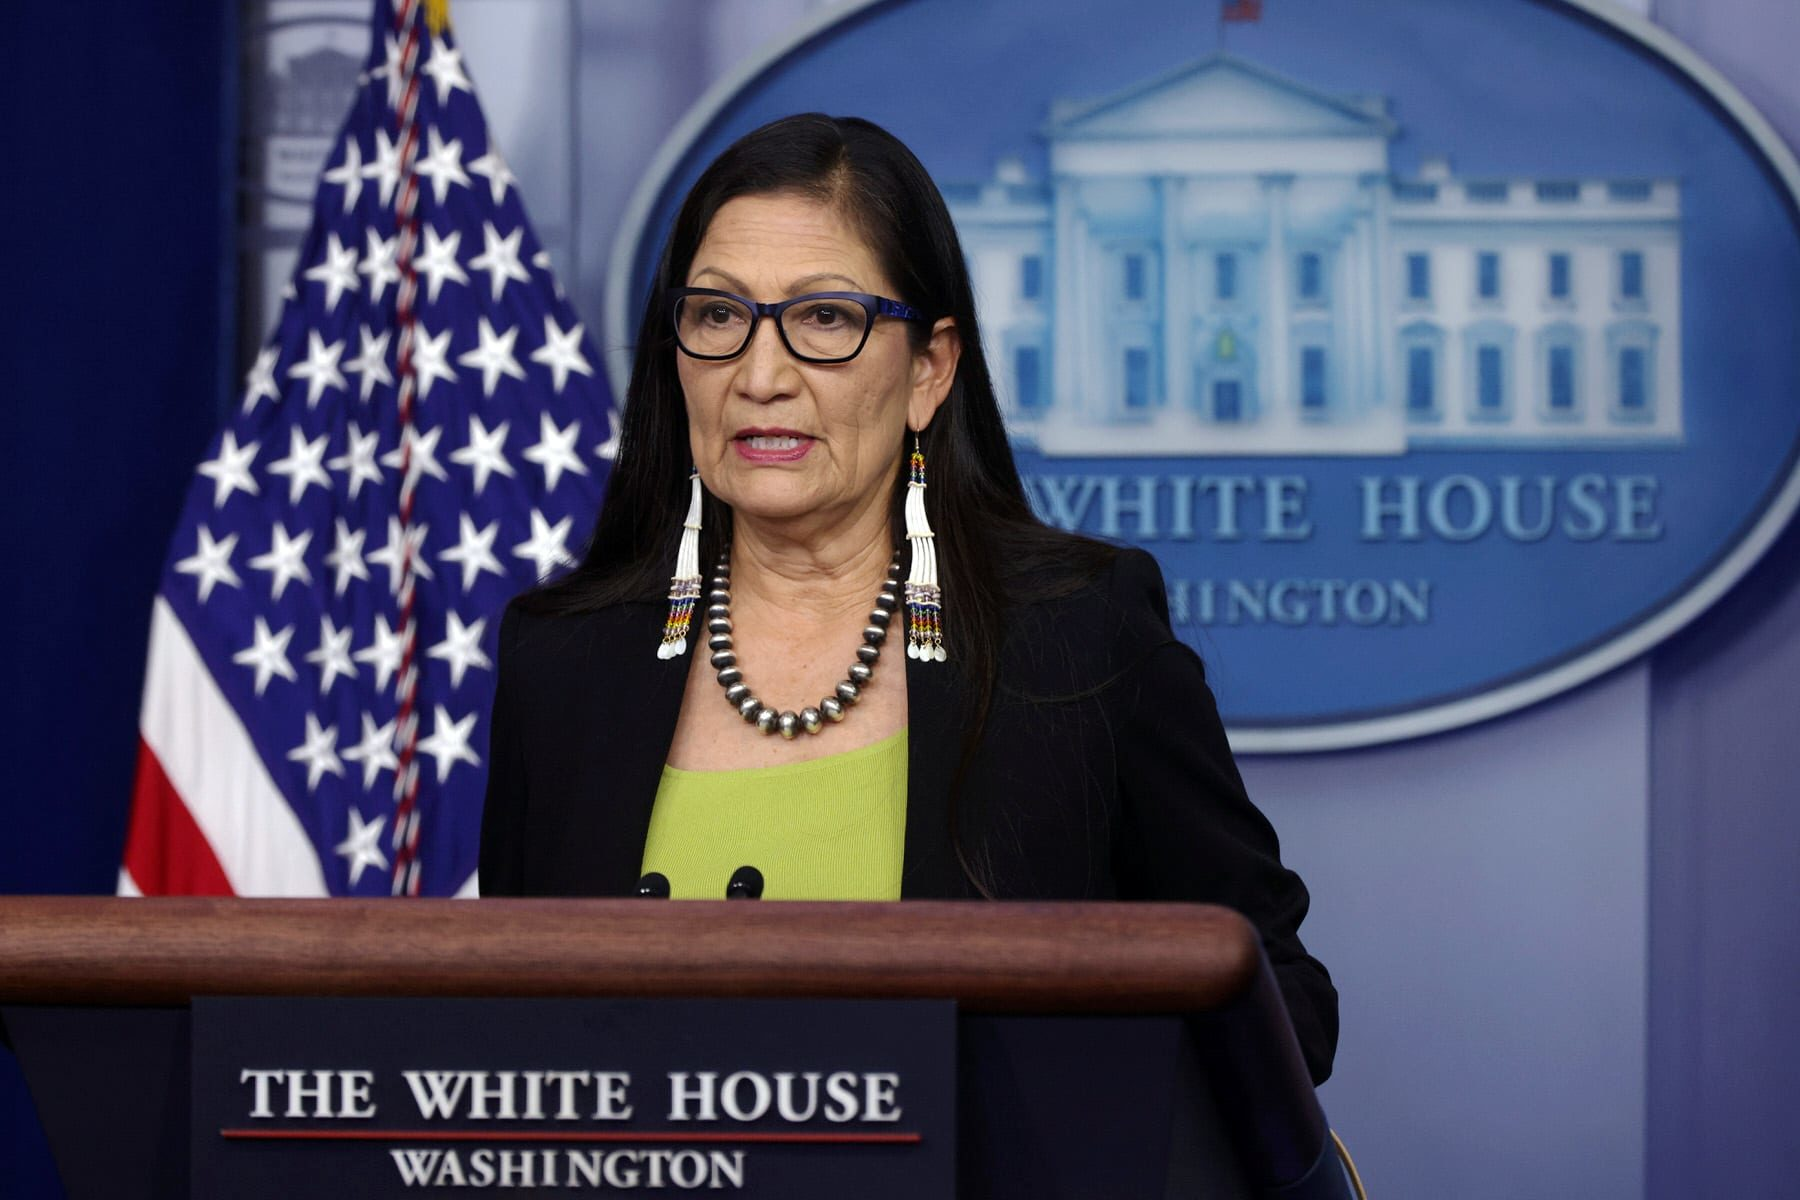 U.S. Secretary of the Interior Deb Haaland speaks during a daily press briefing.